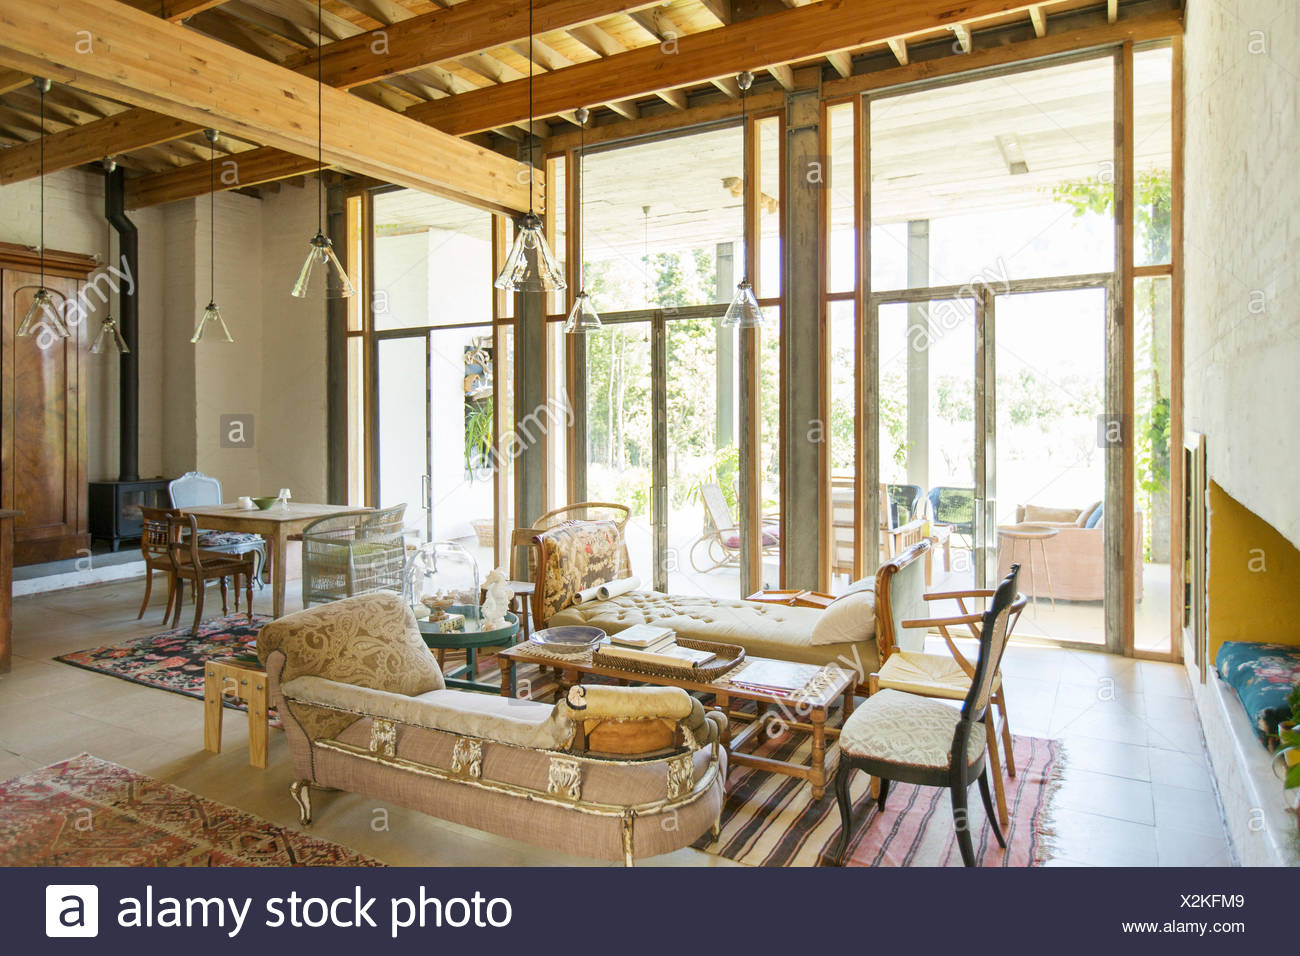 Living and dining area of rustic house - Stock Image